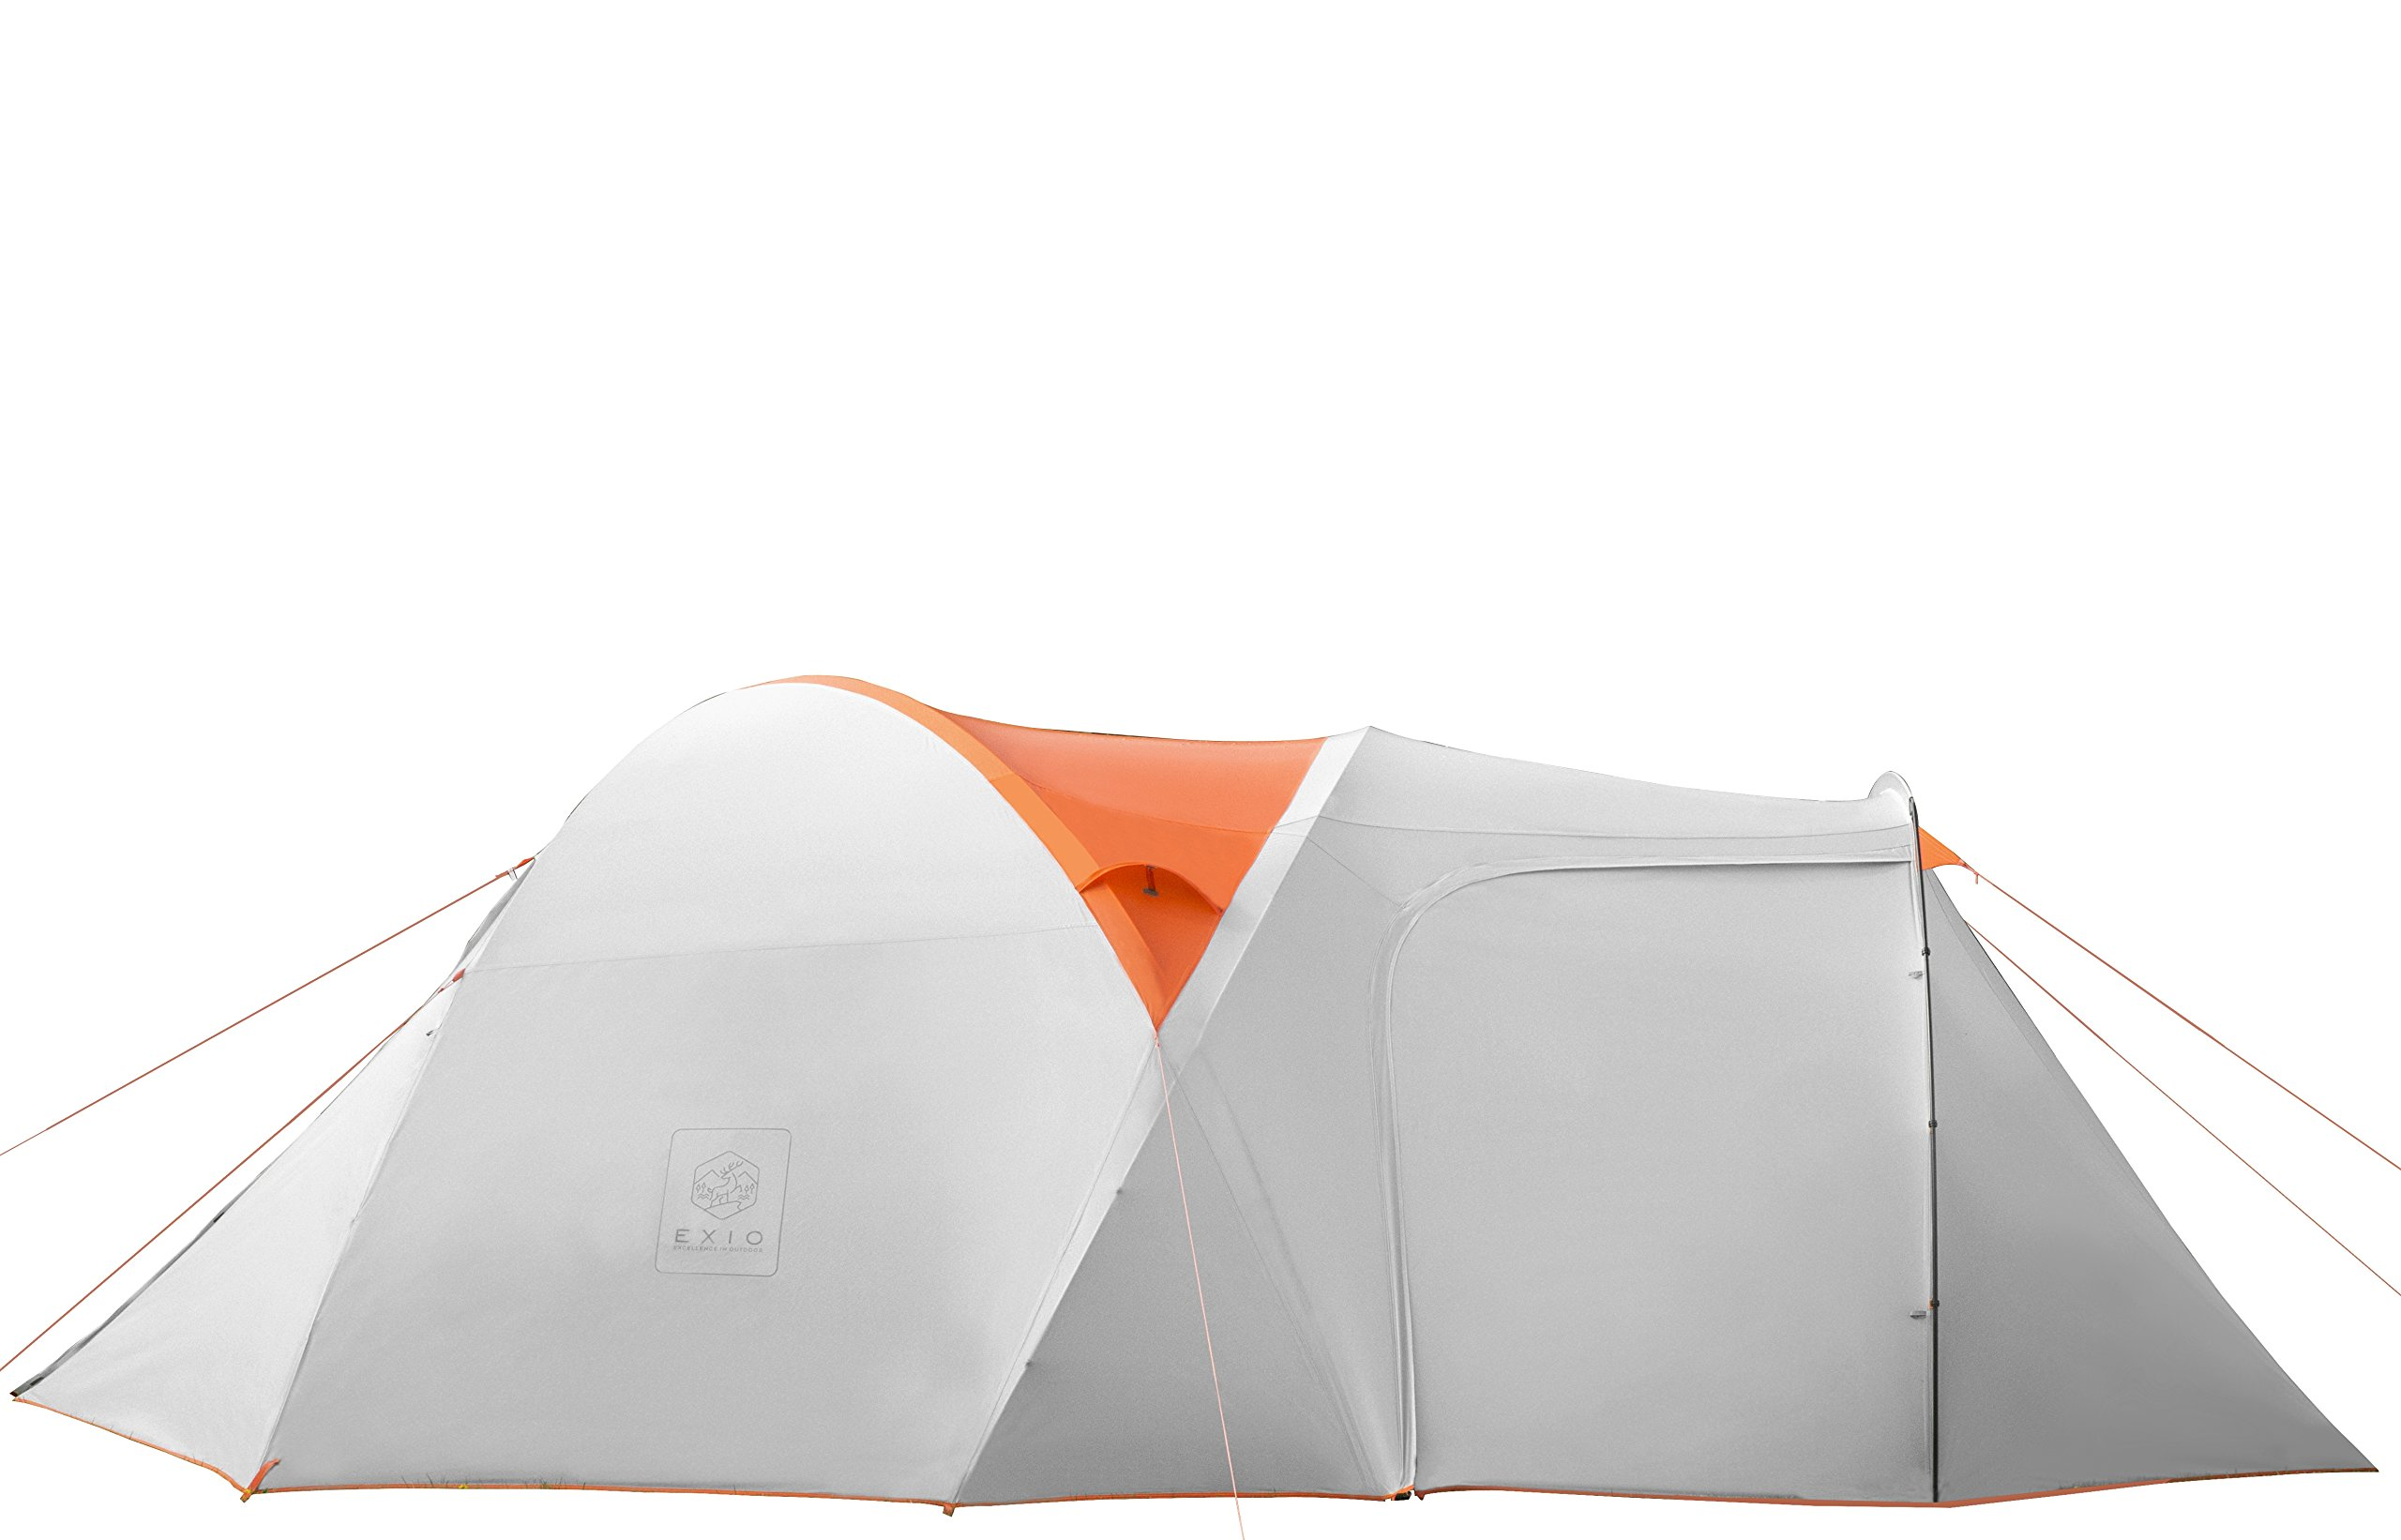 Exio Gear EXIO 6-Person Compact Backcountry Tent, 20D Breathable Ripstop Nylon Tent and Rainfly with PU2000 Silicone Coating, Aluminum Poles, Footprint Included